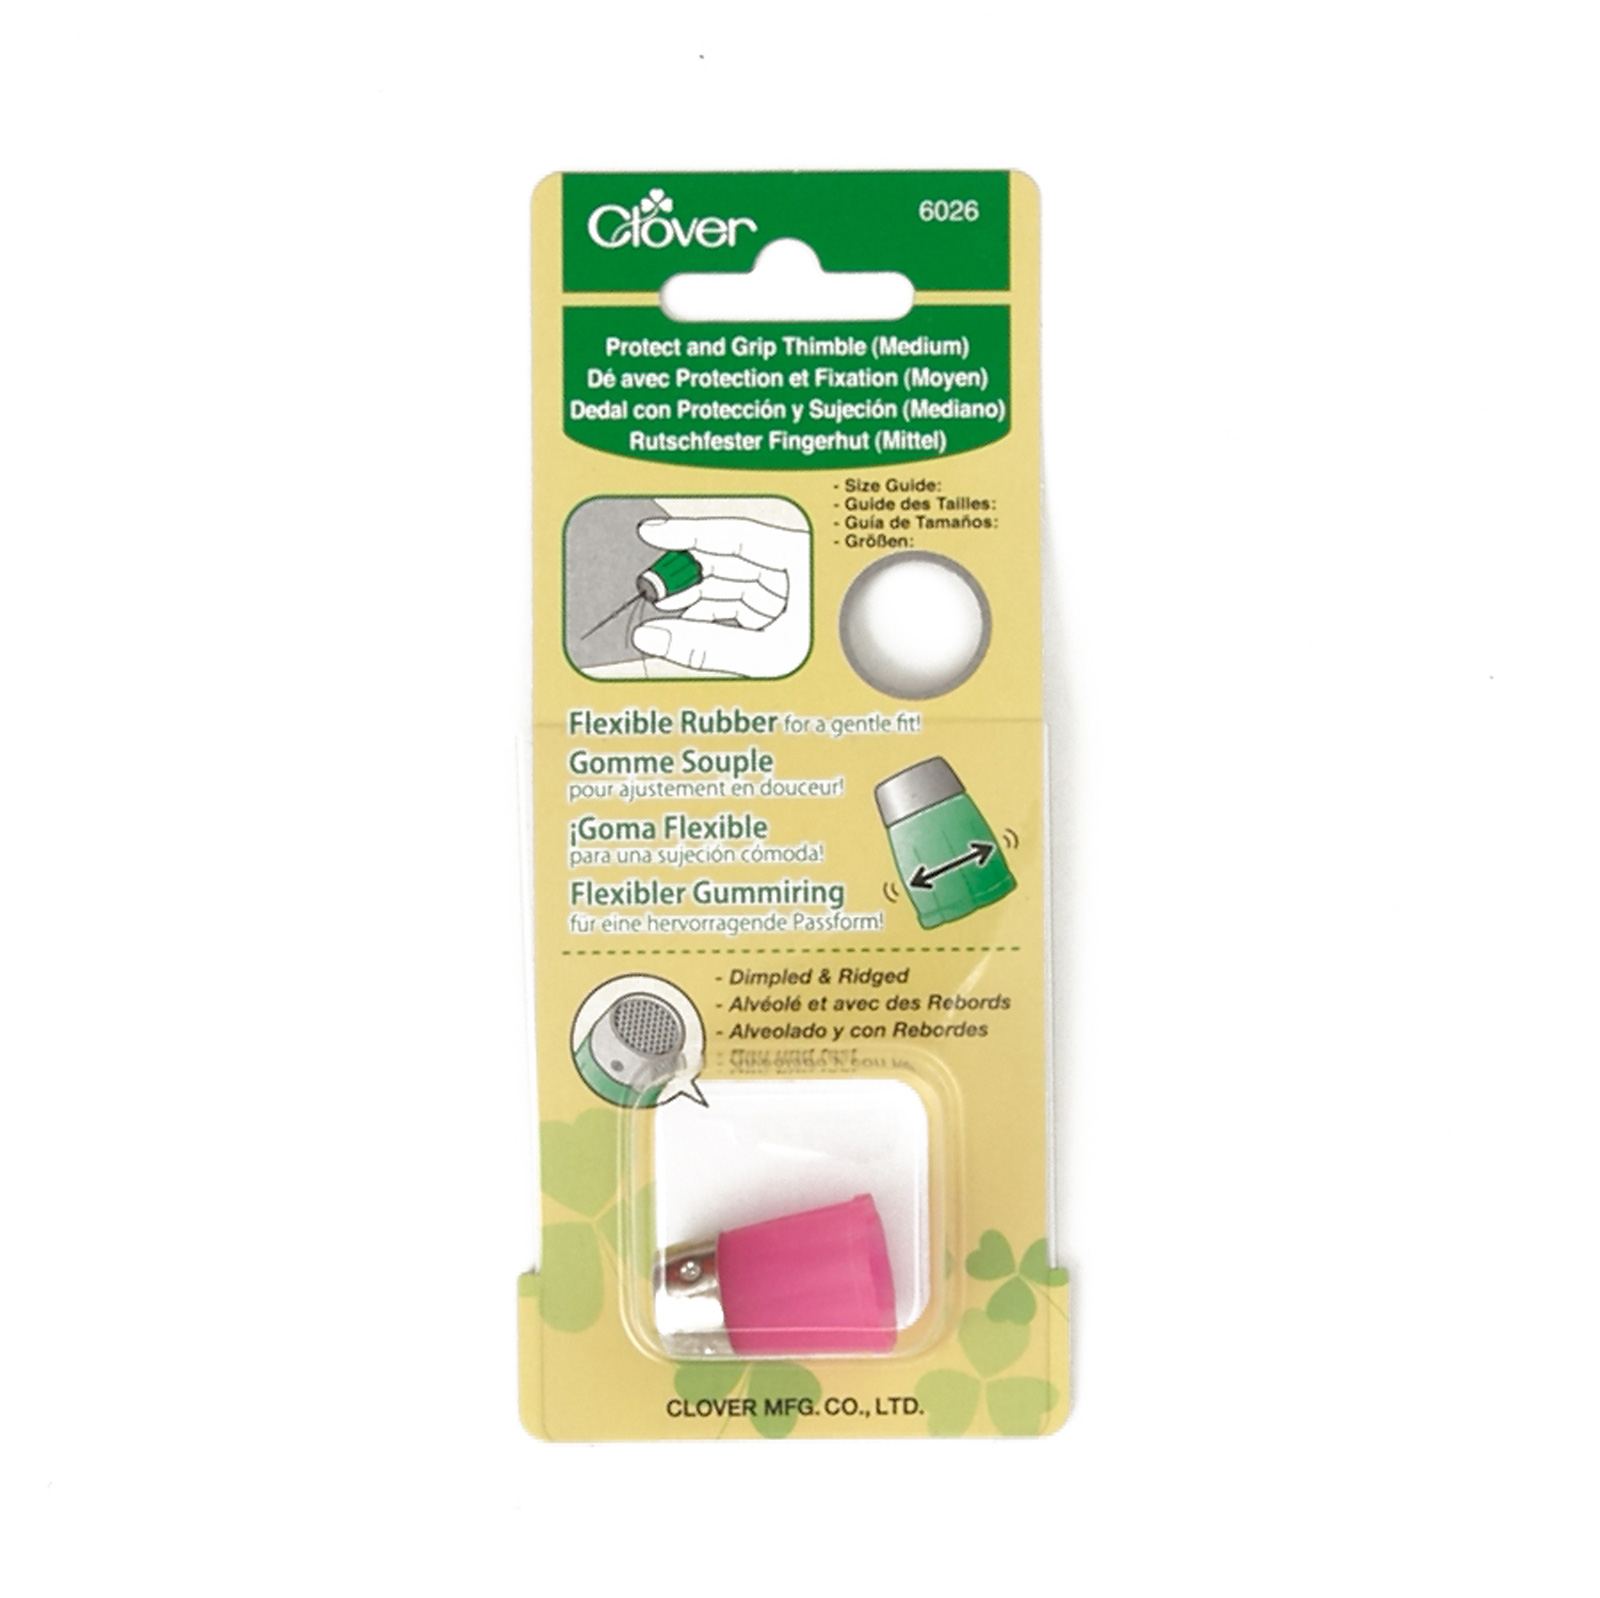 Combine into 0334097 Clover Protect & Grip Thimble Medium by Clover Needlecraft in USA